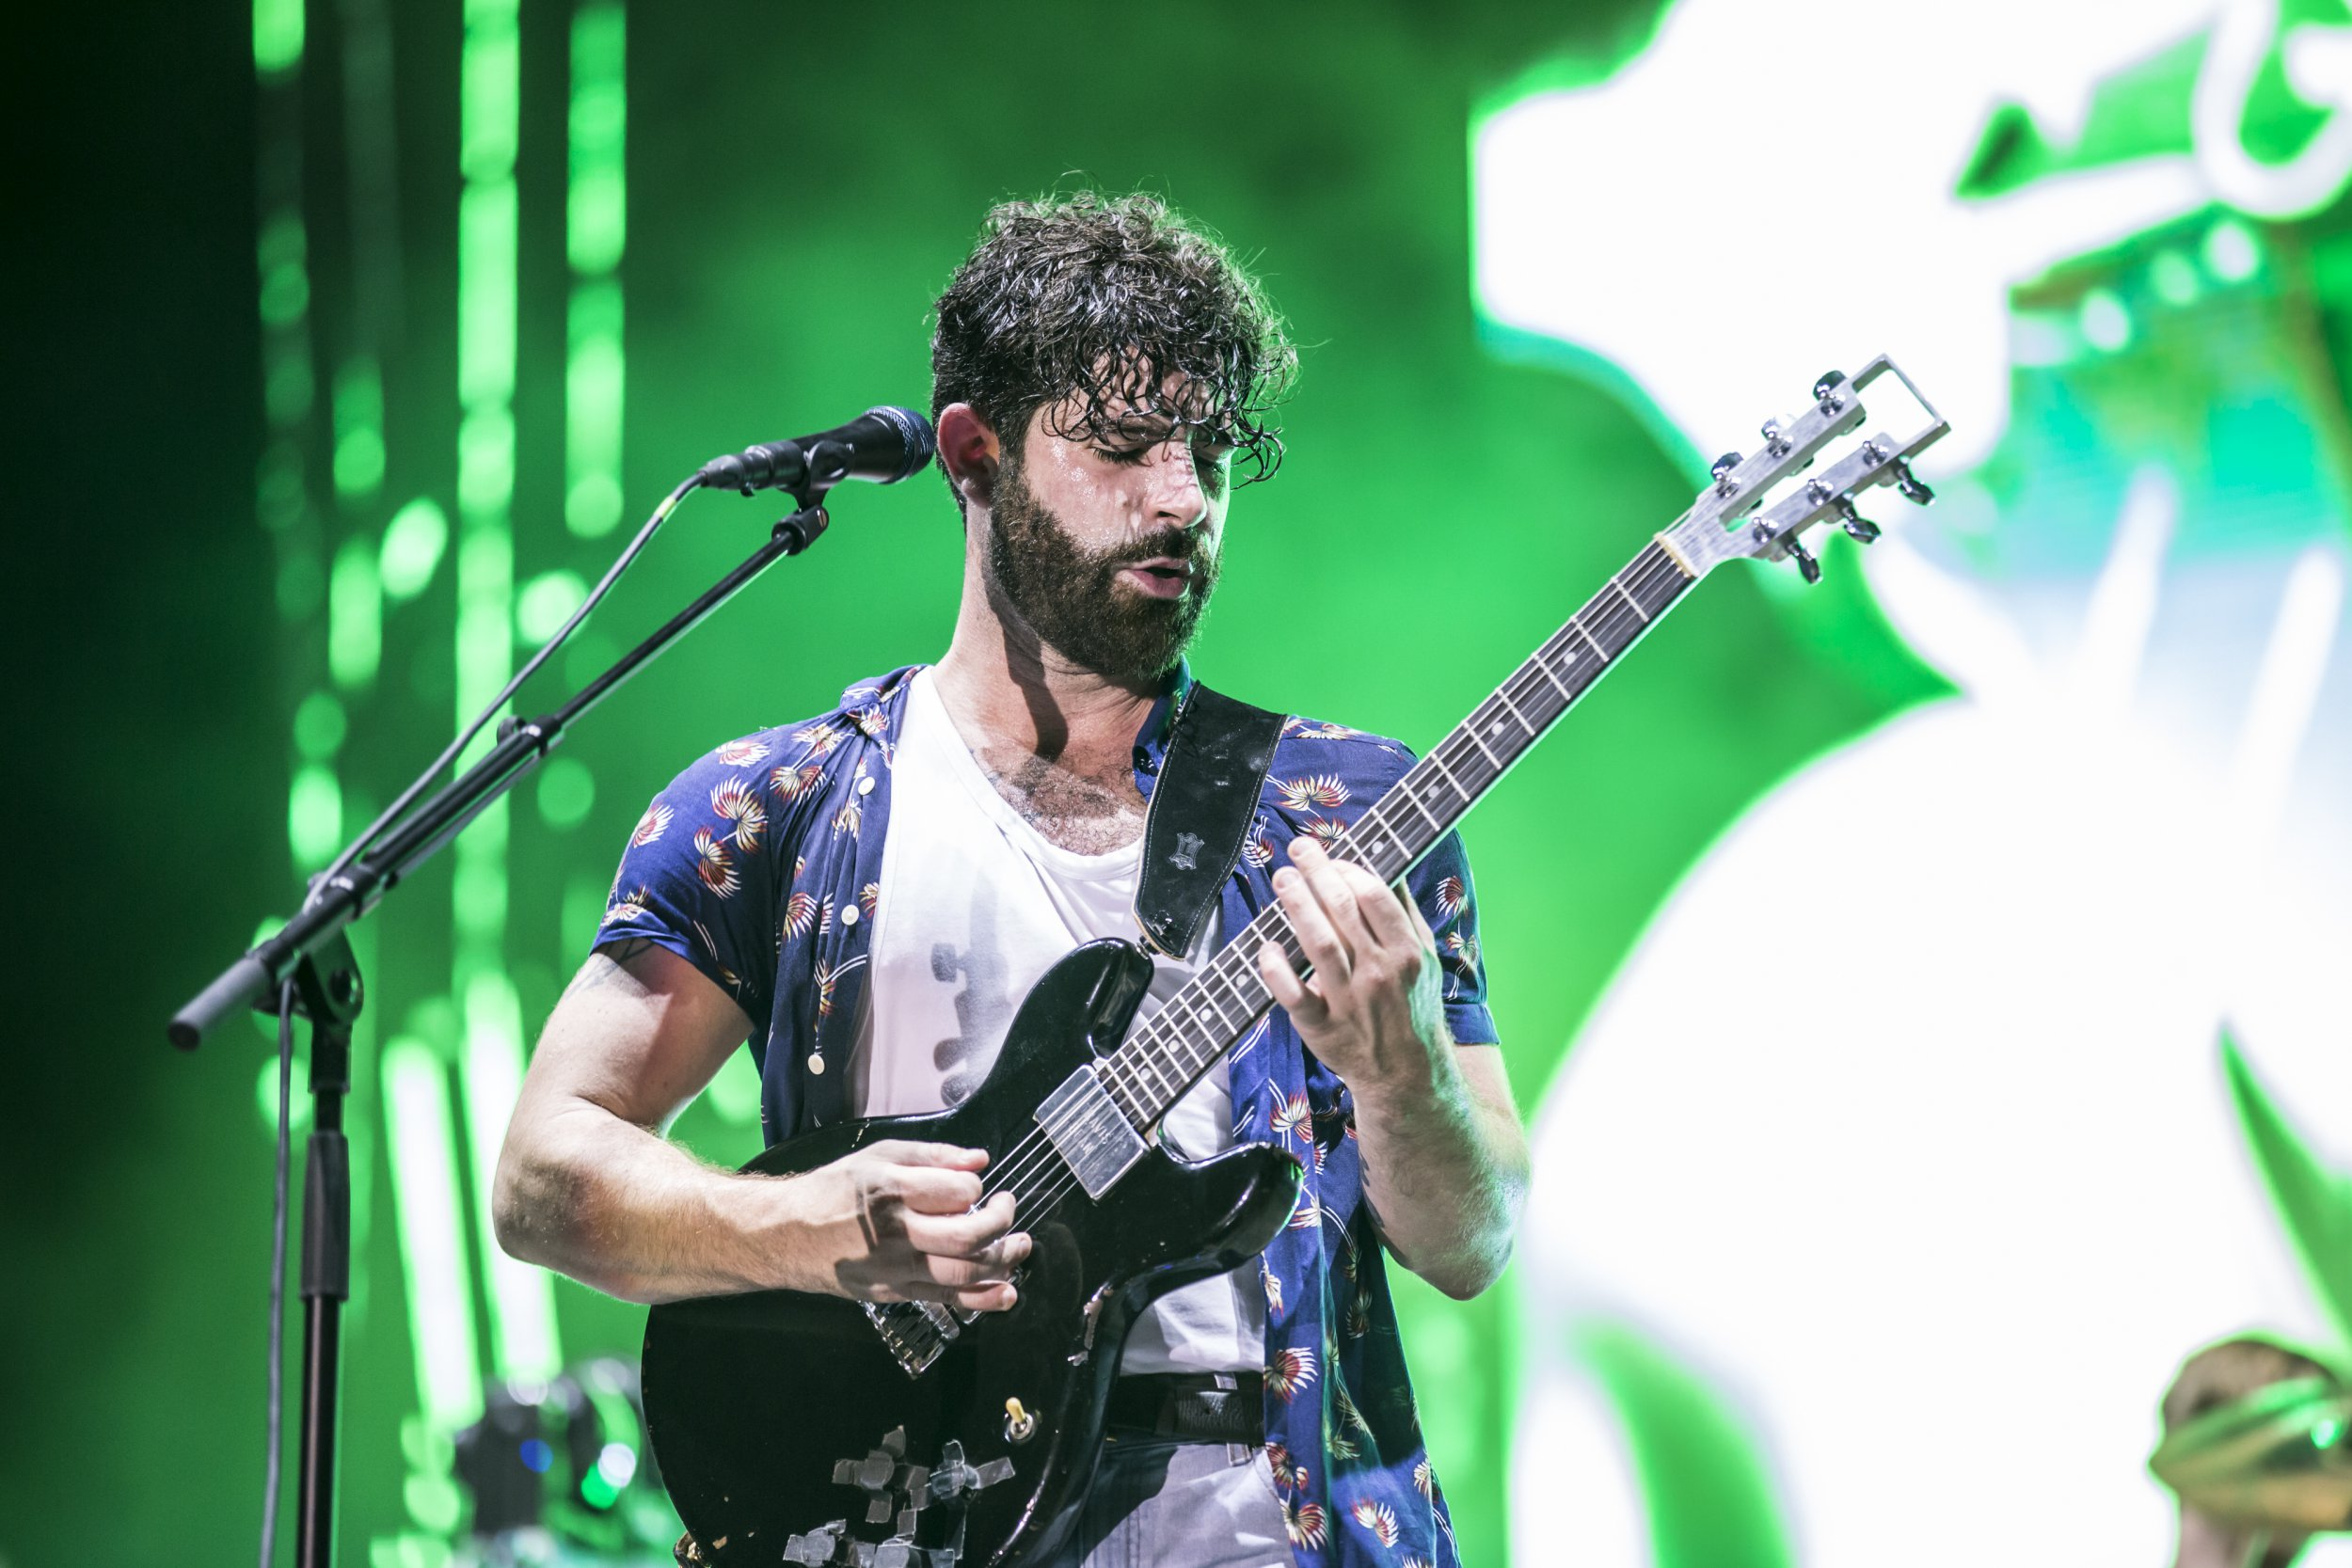 FOALS - BENICASSIM, SPAIN - JULY 14: Yannis Philippakis of Foals performs in concert during day 2 of Festival Internacional de Benicassim (FIB) on July 14, 2017 in Benicassim, Spain. (Photo by Xavi Torrent/WireImage)